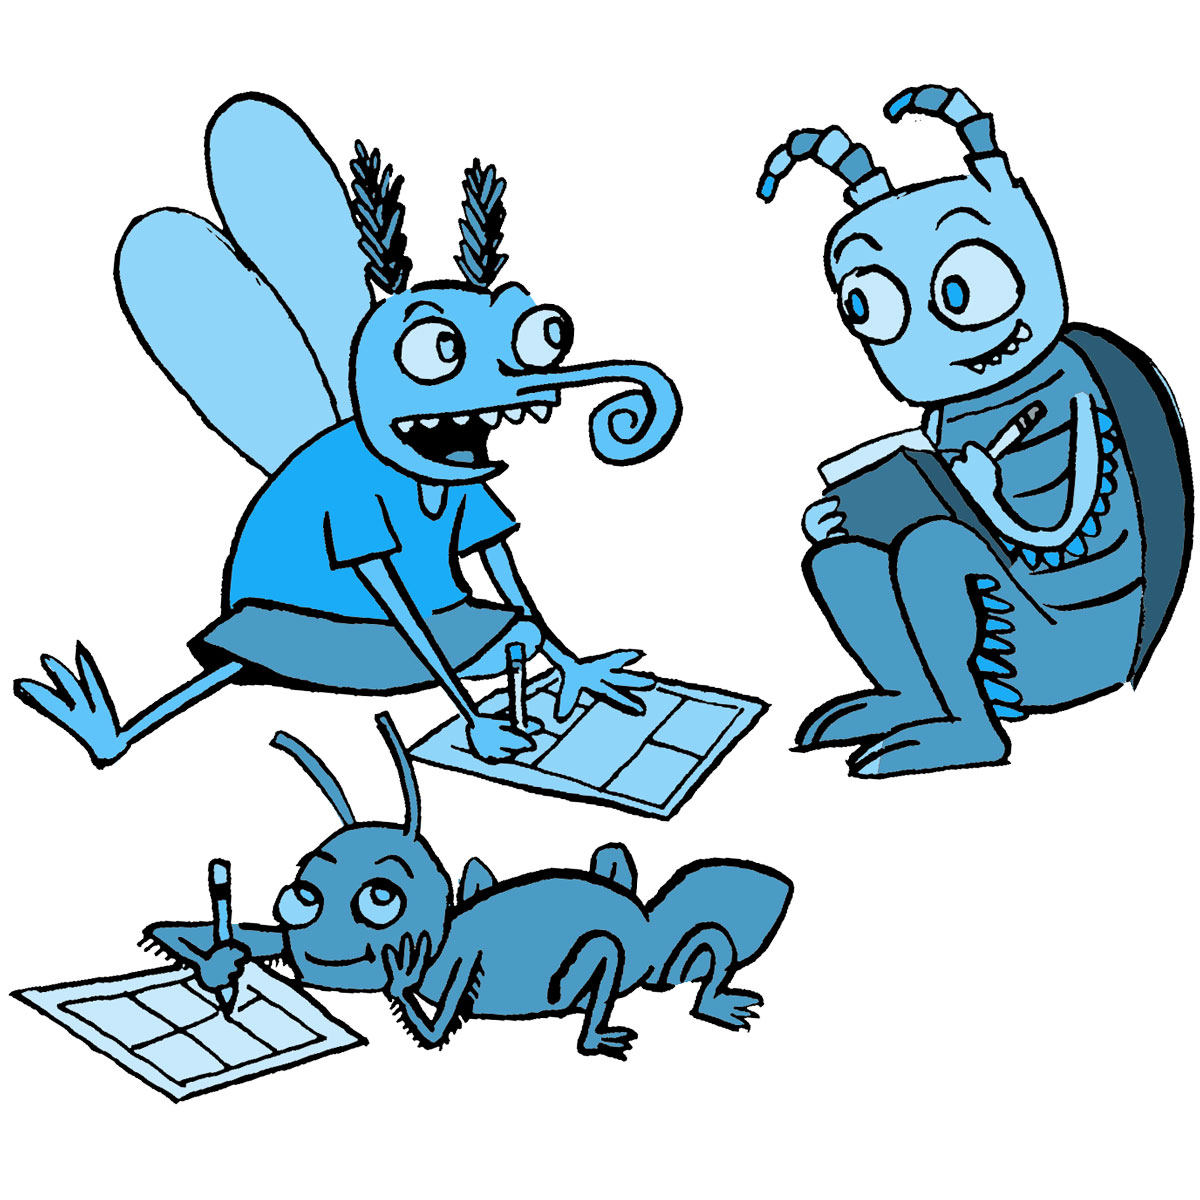 blue insects drawing and chatting with each other